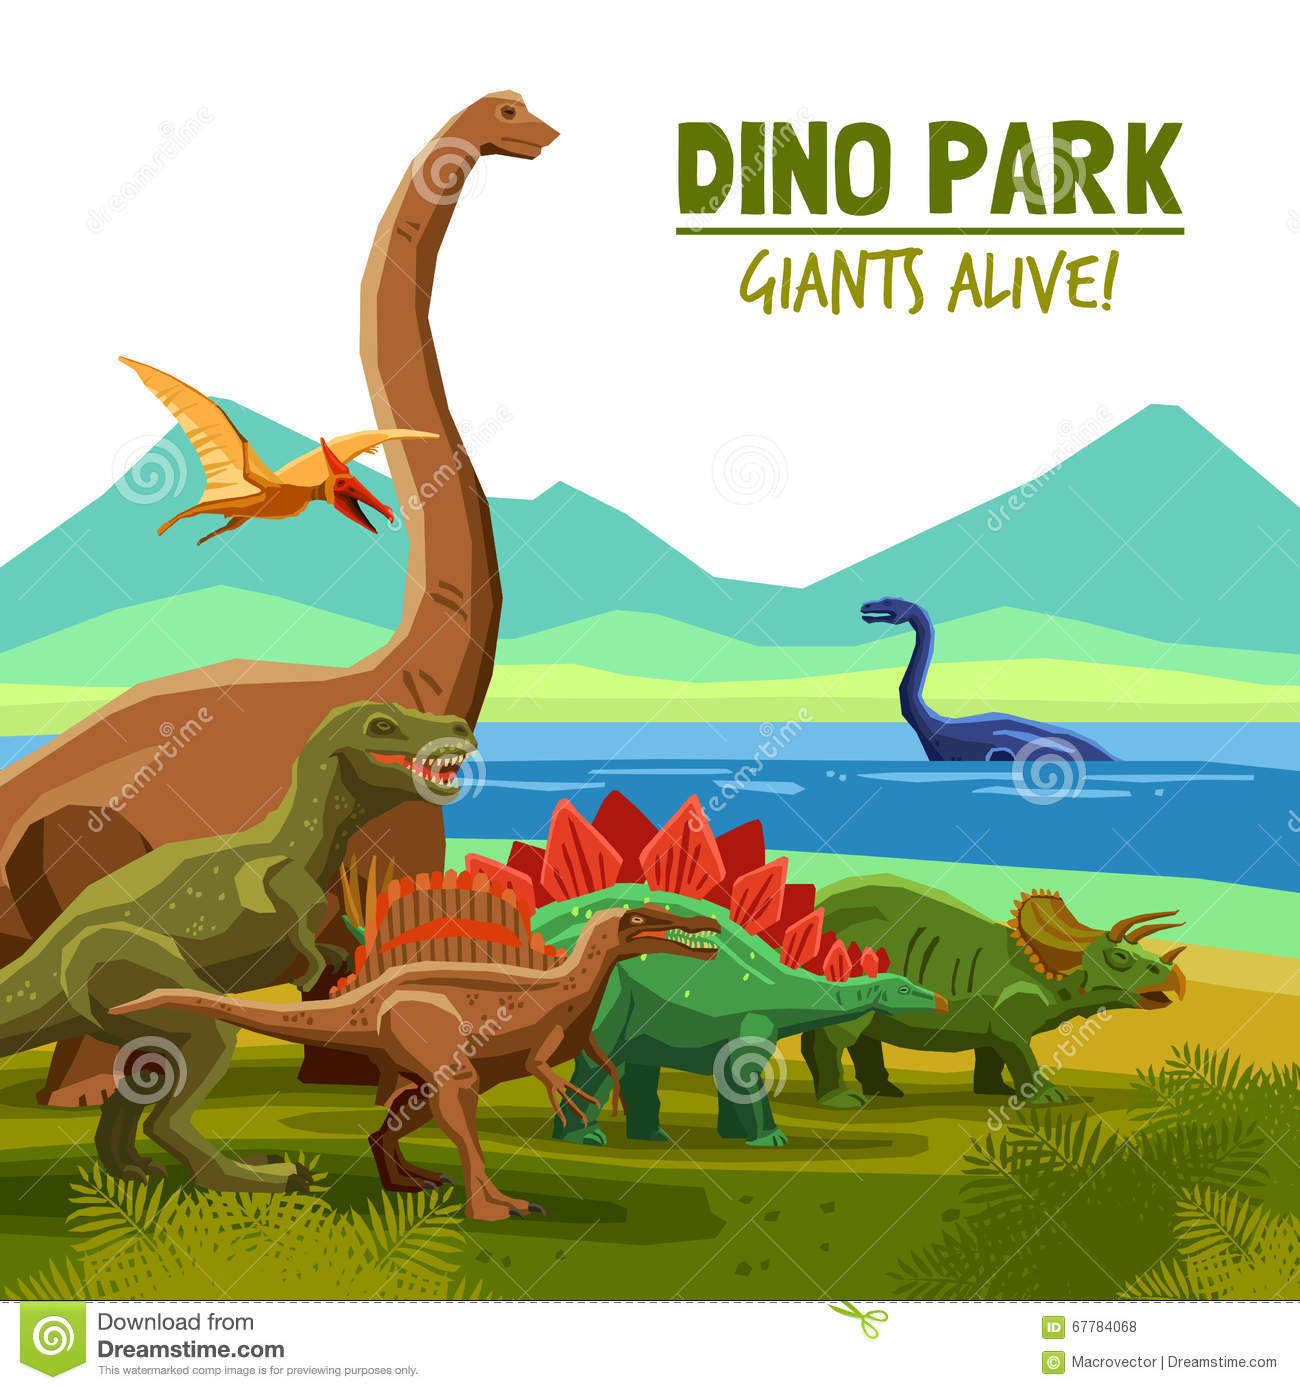 c4600cf992 Different flying swimming and land dinosaurs with lake and mountains on  background dino park cartoon poster vector illustration